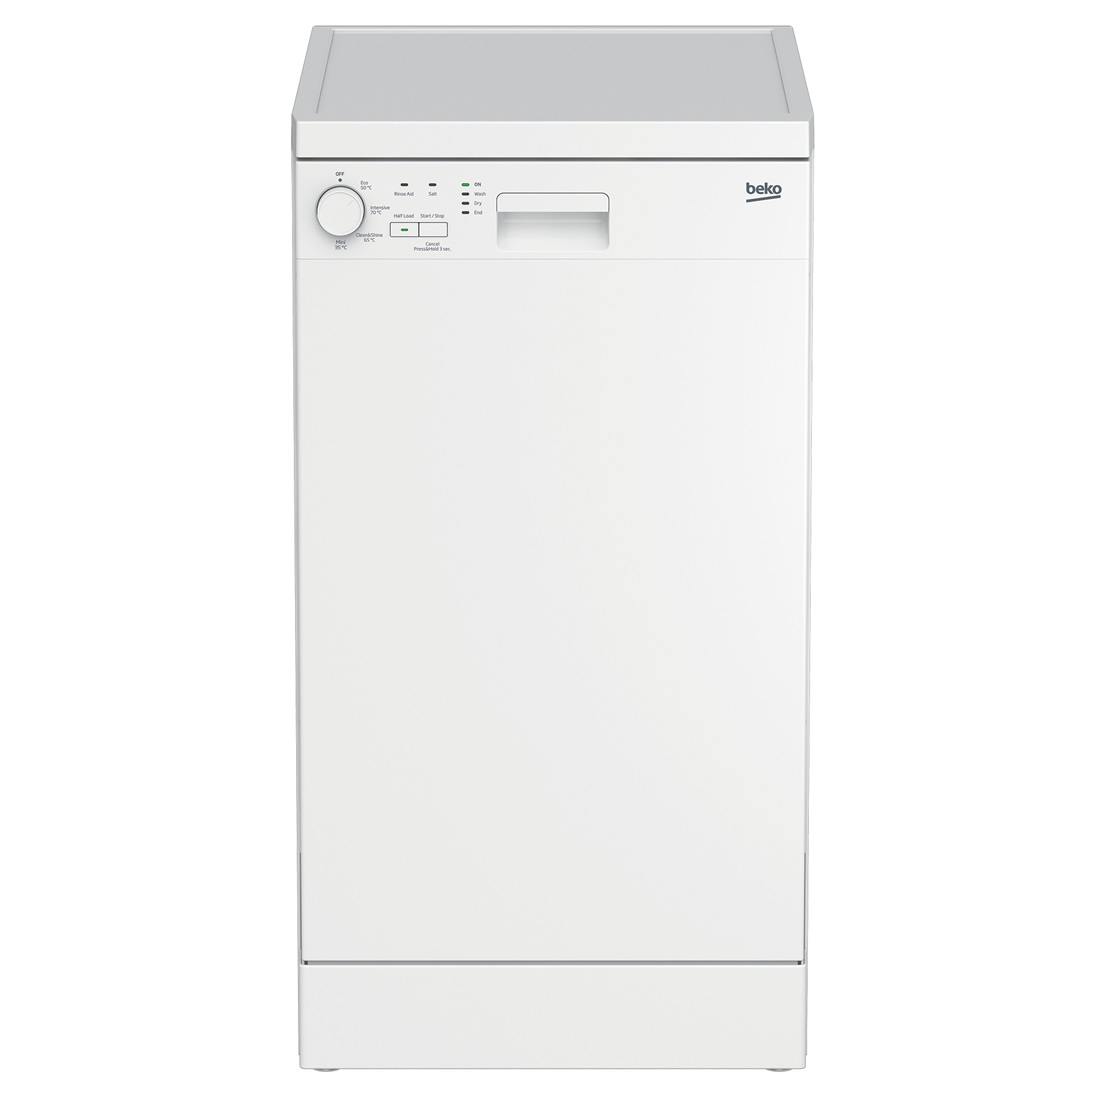 10-Place Slimline Dishwasher 4 Progs Class A+ White